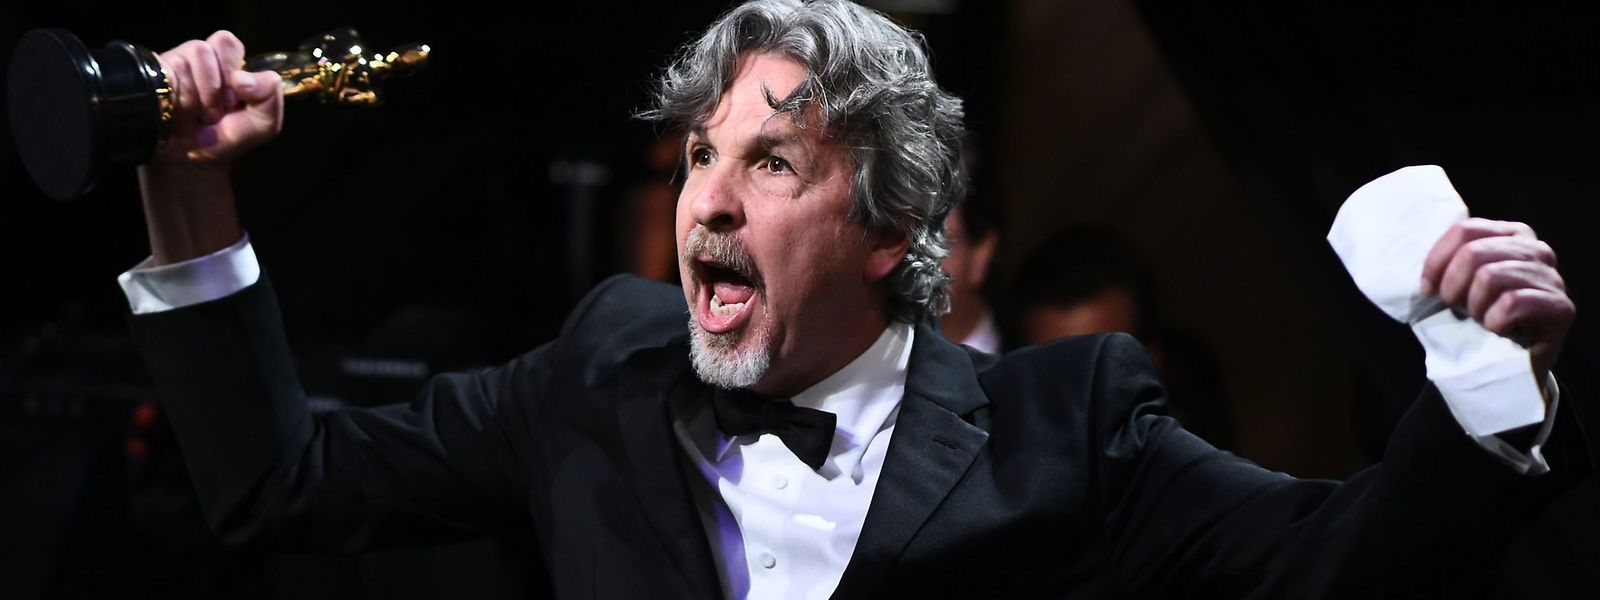 "TOPSHOT - This handout photo released by A.M.P.A.S. shows Director Peter Farrelly, winner of Best Picture and Best Original Screenplay for ""Green Book,"" backstage during the 91st Annual Academy Awards at the Dolby Theatre in Hollywood, California on February 24, 2019. (Photo by Matt Petit / A.M.P.A.S / AFP) / RESTRICTED TO EDITORIAL USE - MANDATORY CREDIT ""AFP PHOTO / A.M.P.A.S  "" - NO MARKETING - NO ADVERTISING CAMPAIGNS - DISTRIBUTED AS A SERVICE TO CLIENTS"